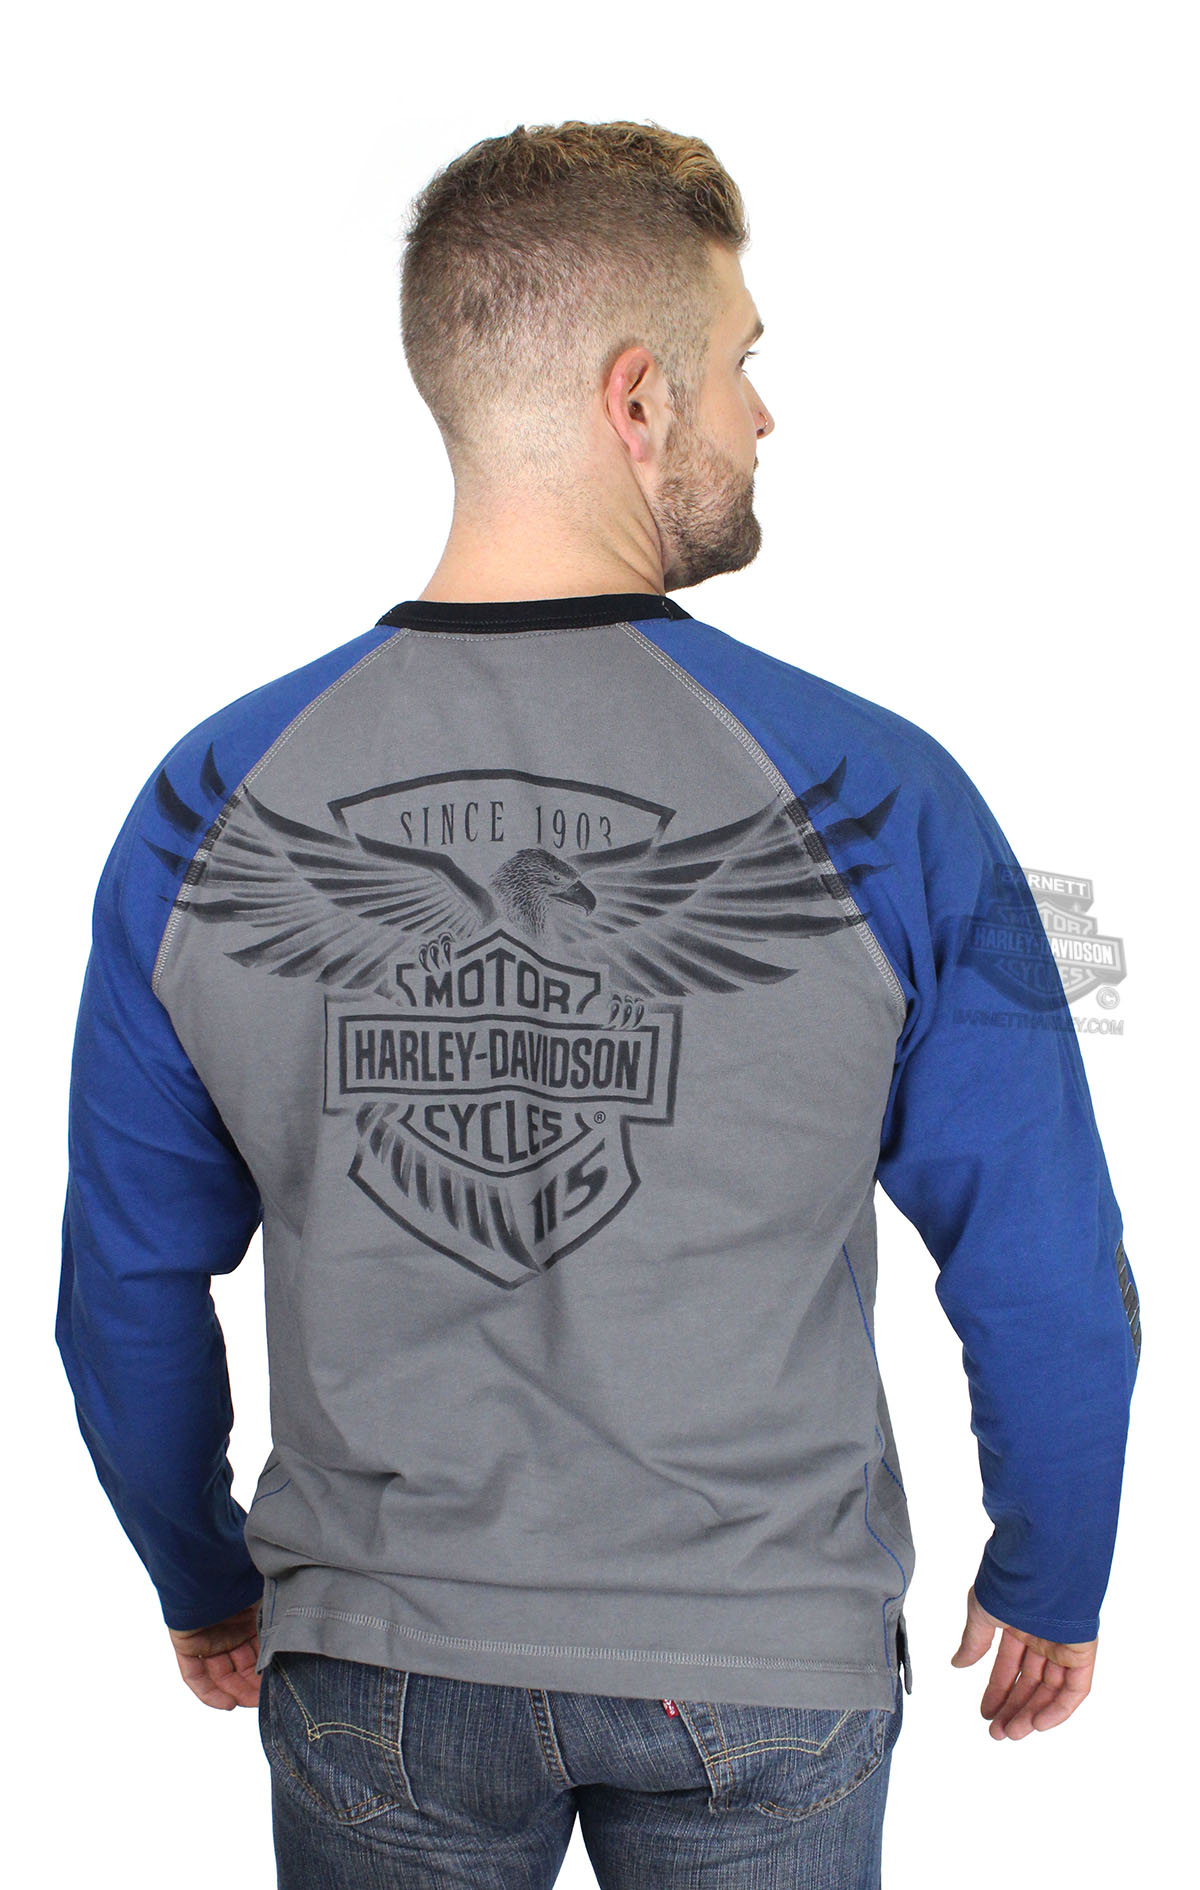 Harley Davidson Long Sleeve Shirts For Sale